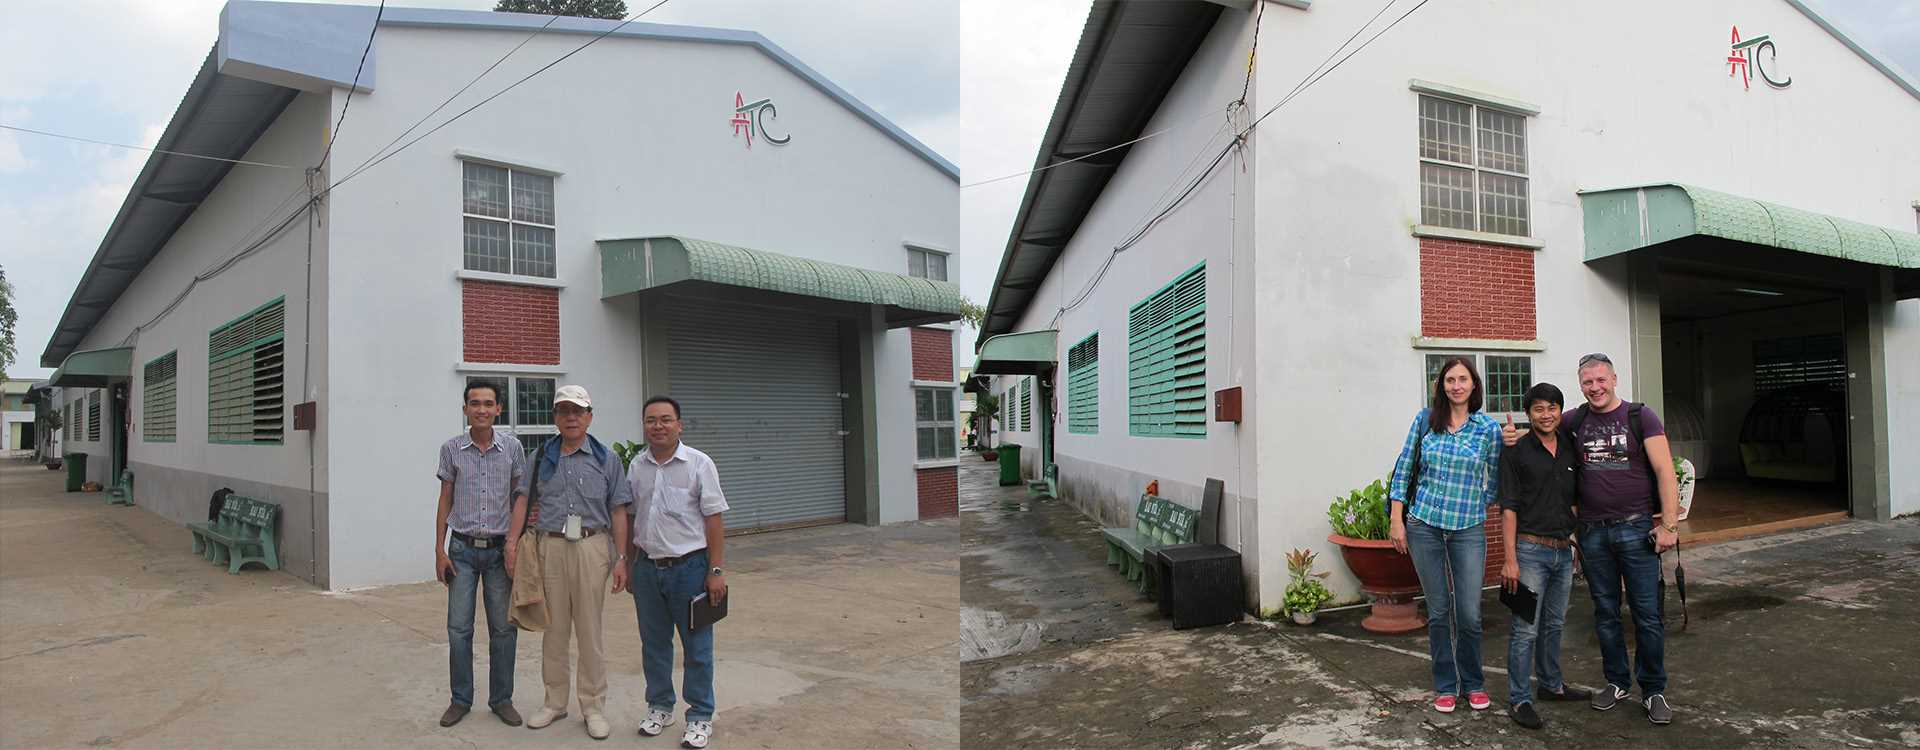 ATC Vietnam Garden Furniture Factory Visit